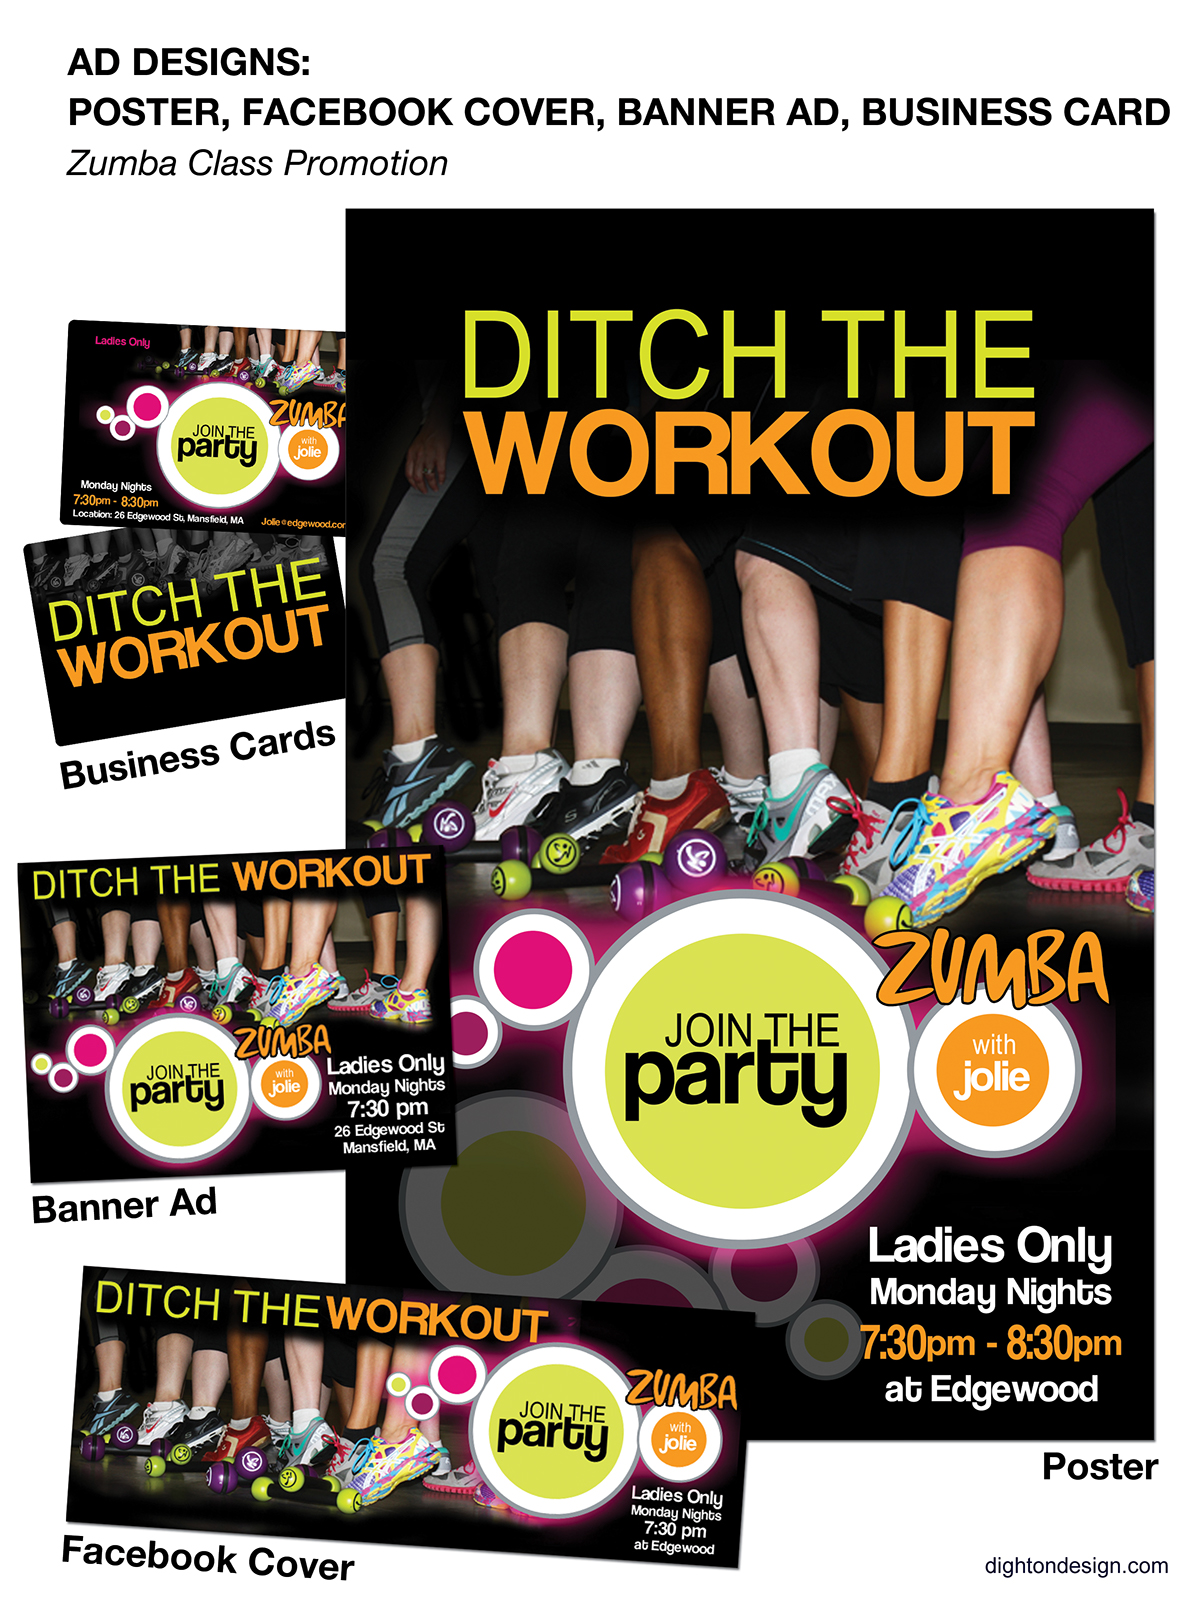 Print and Web Ad Designs for Zumba Class Promotion on Behance